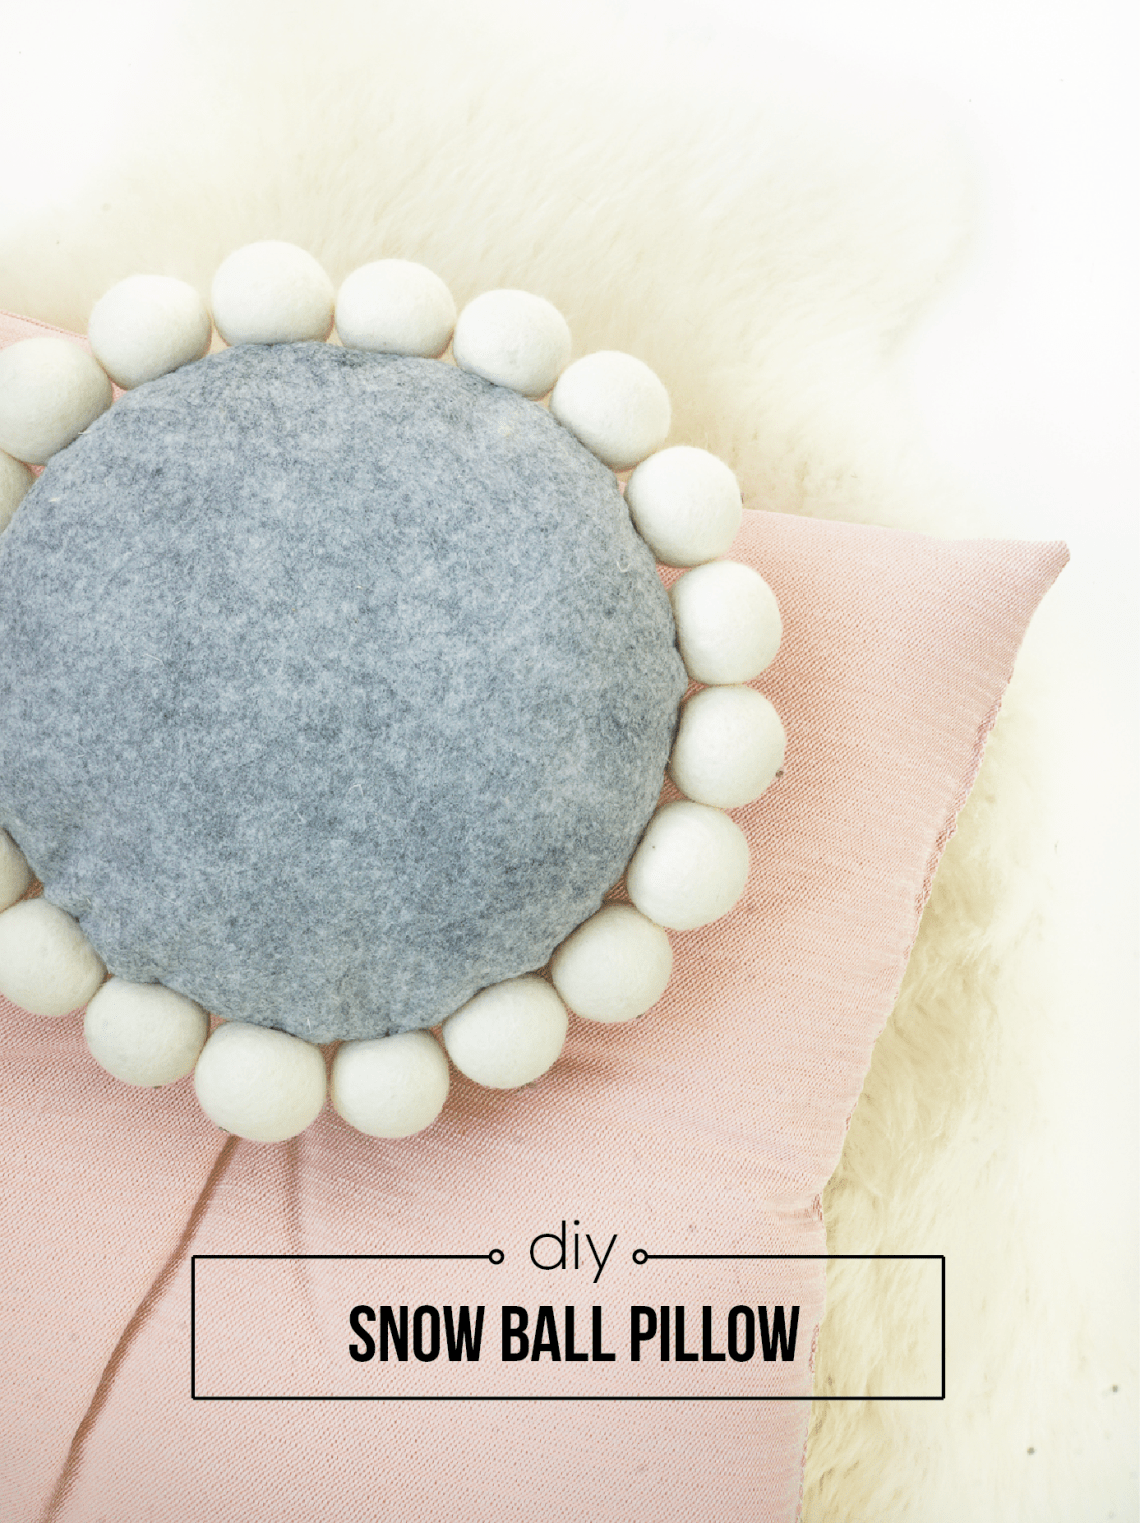 Switch up your throw pillows with this easy DIY snowball pillow. Click for the tutorial!